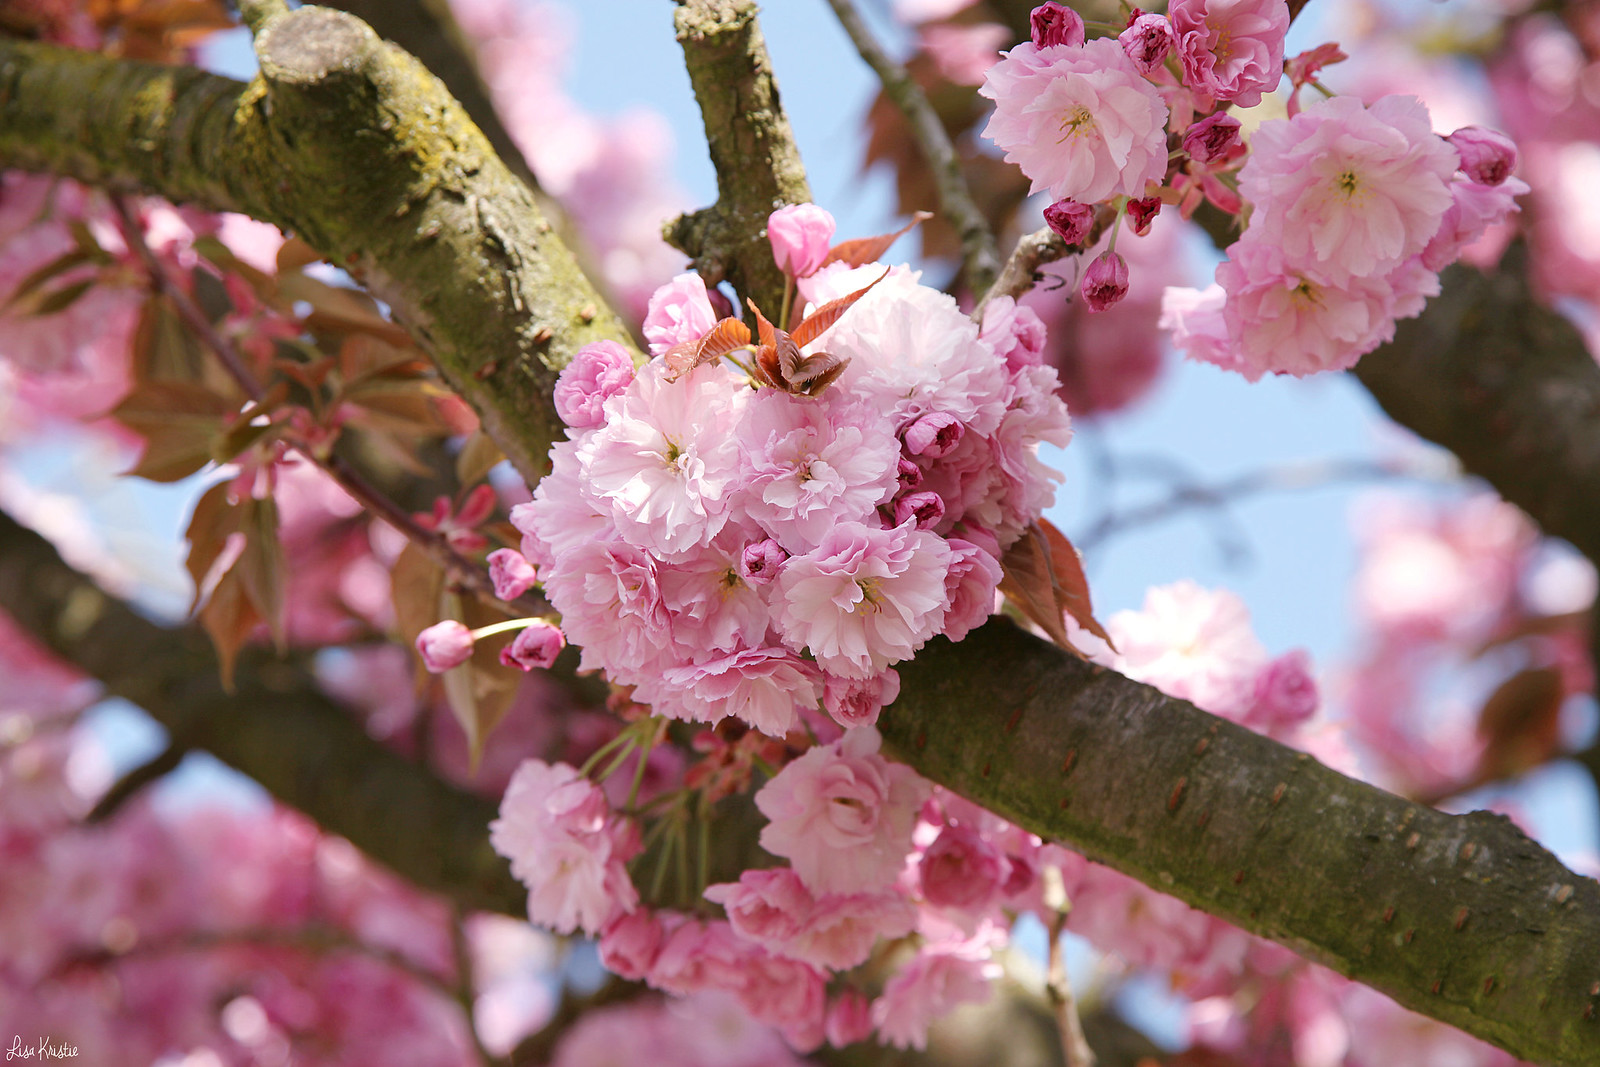 Pink Japanese cherry blossoms flowers in bloom closeup branch tree europe Belgium Spring Easter April 2017